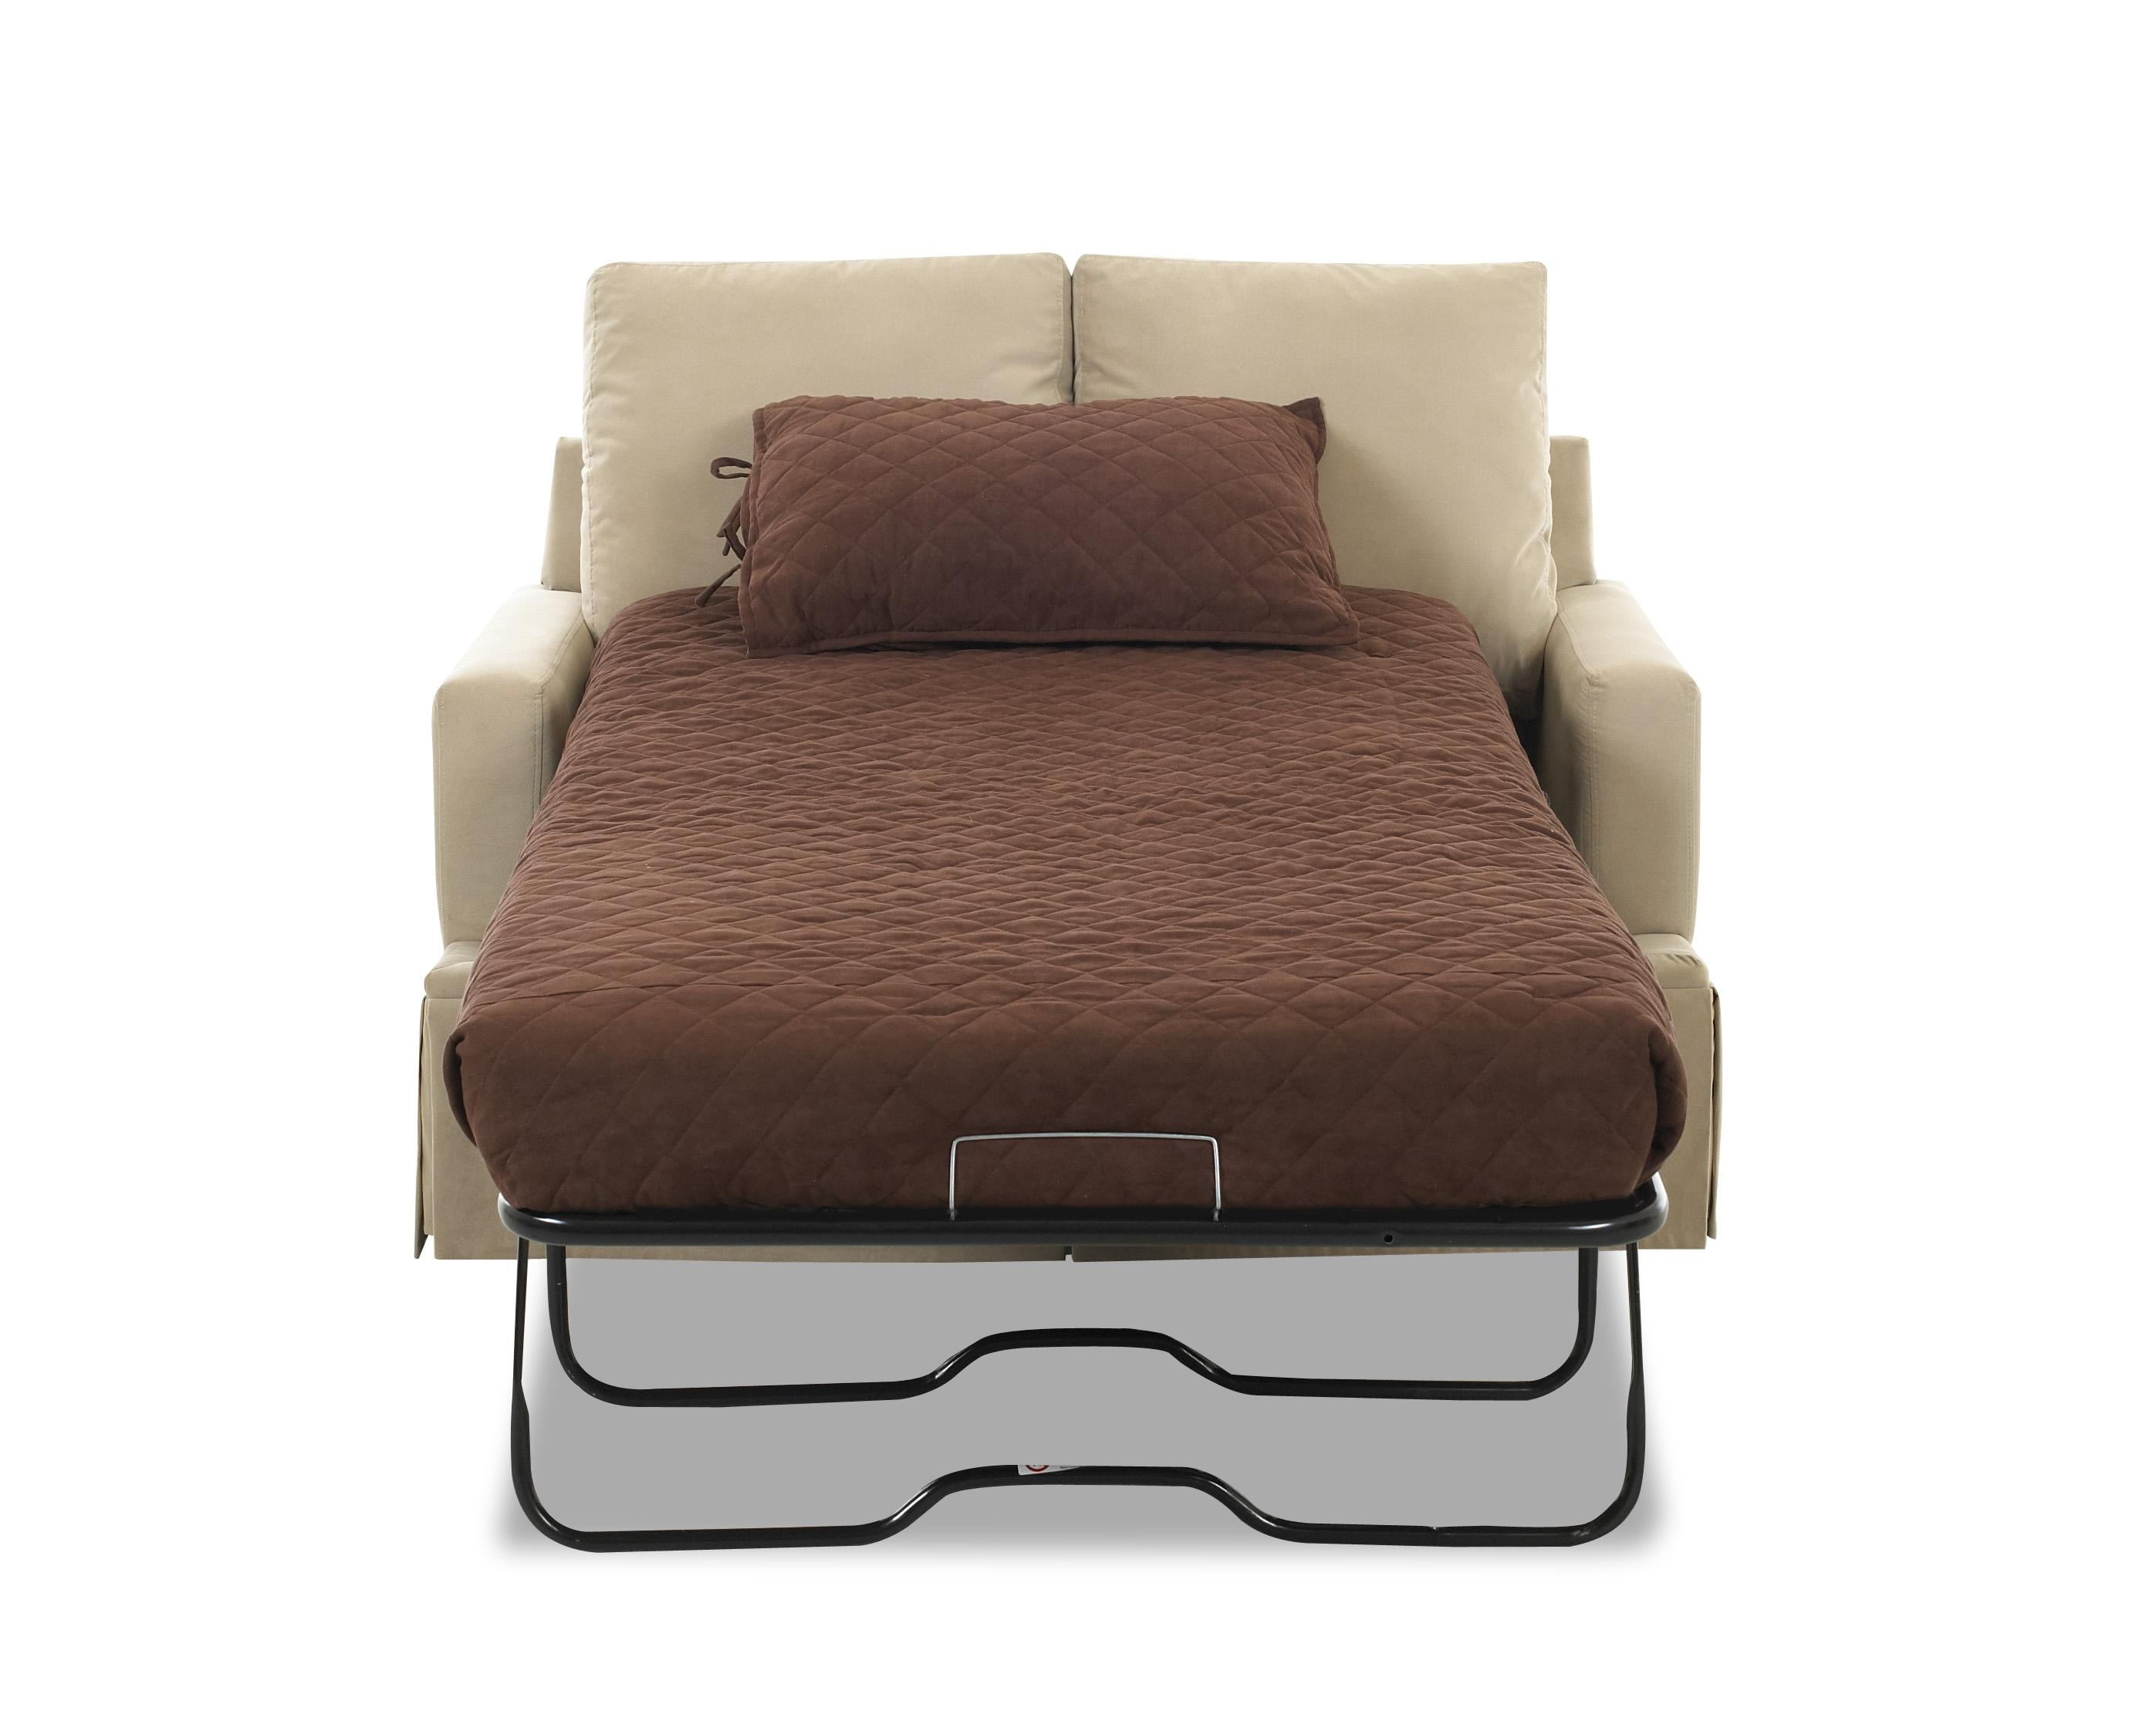 Twin Sofa Sleeper Sheets | Tehranmix Decoration Throughout Sheets For Sofa Beds Mattress (View 7 of 20)